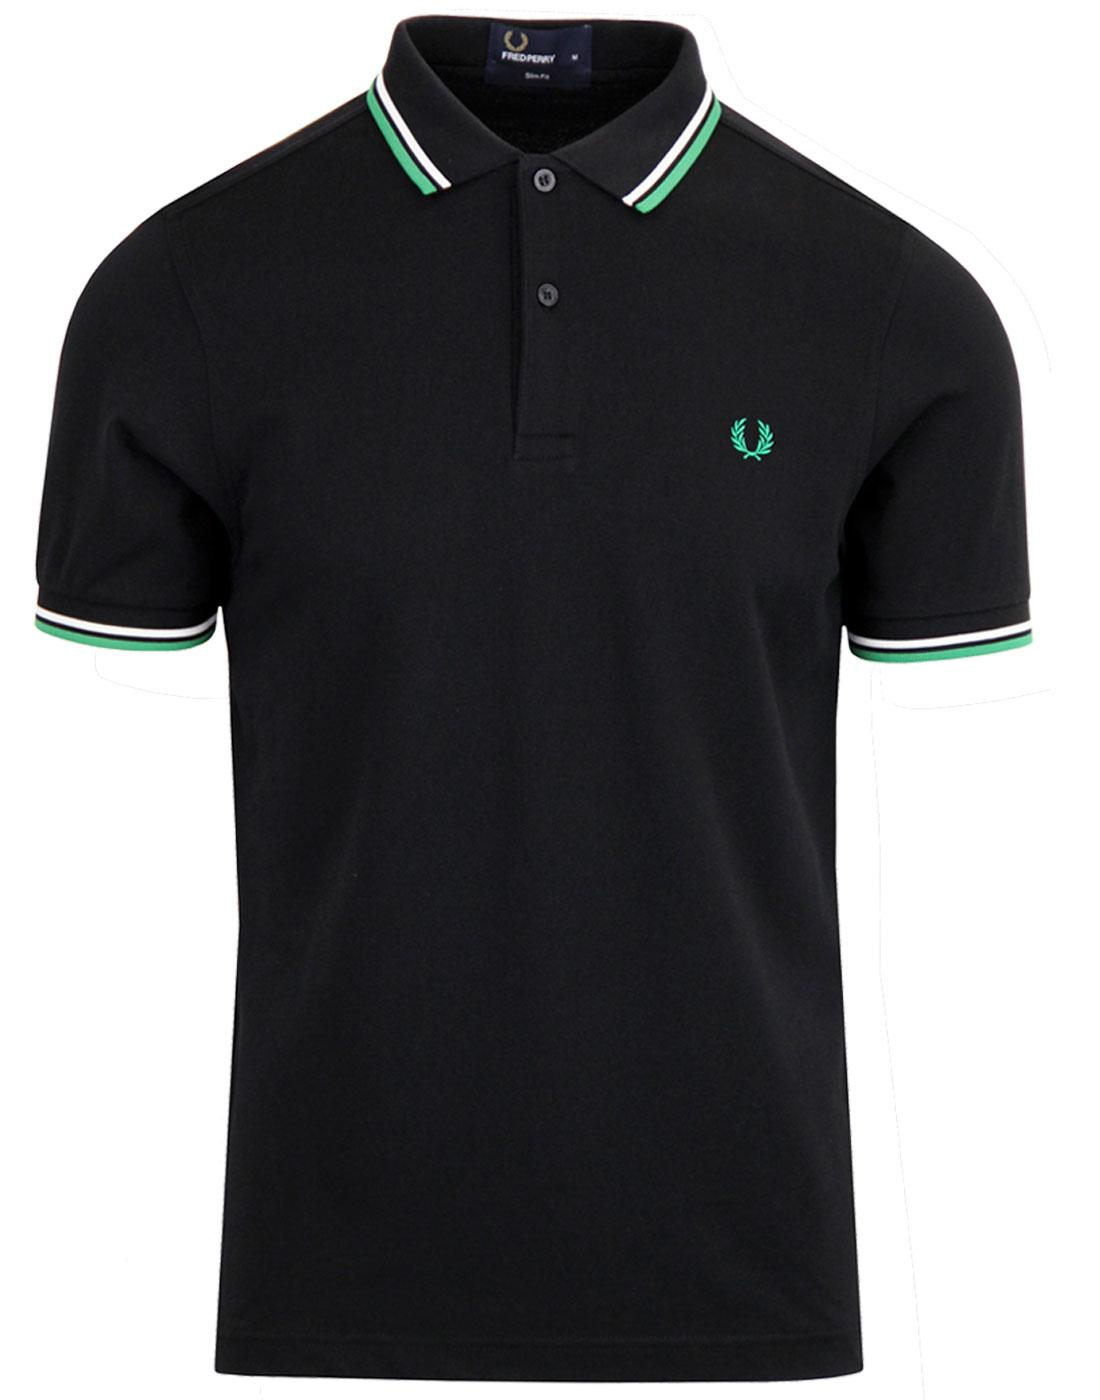 FRED PERRY M3600 Mod Twin Tipped Polo Shirt Black